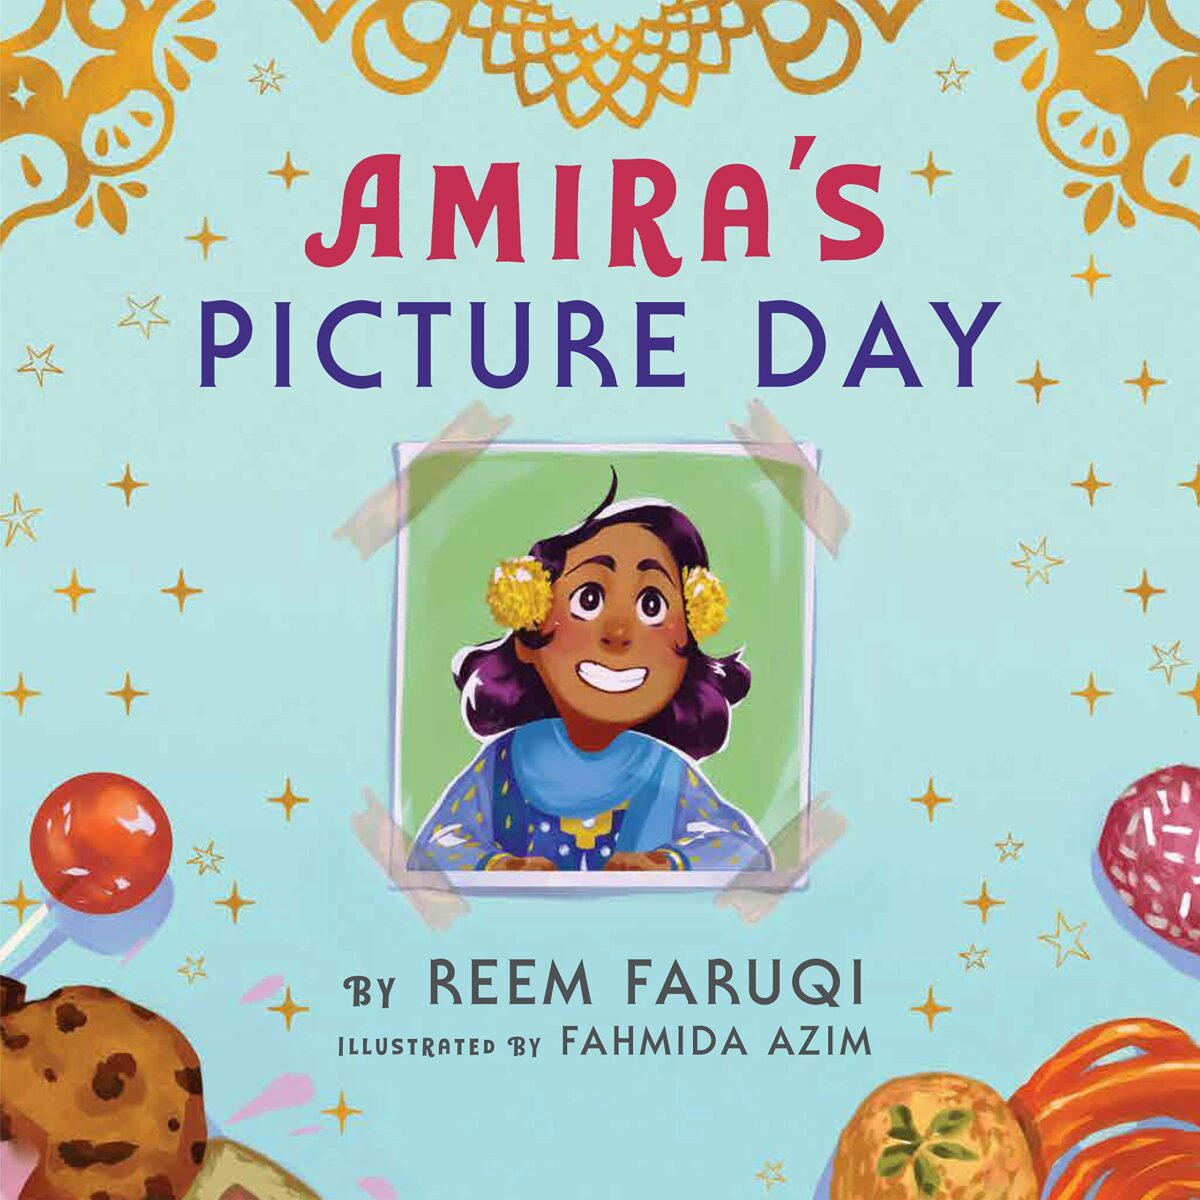 Book cover for Amira's Picture Day by Reem Faruqi